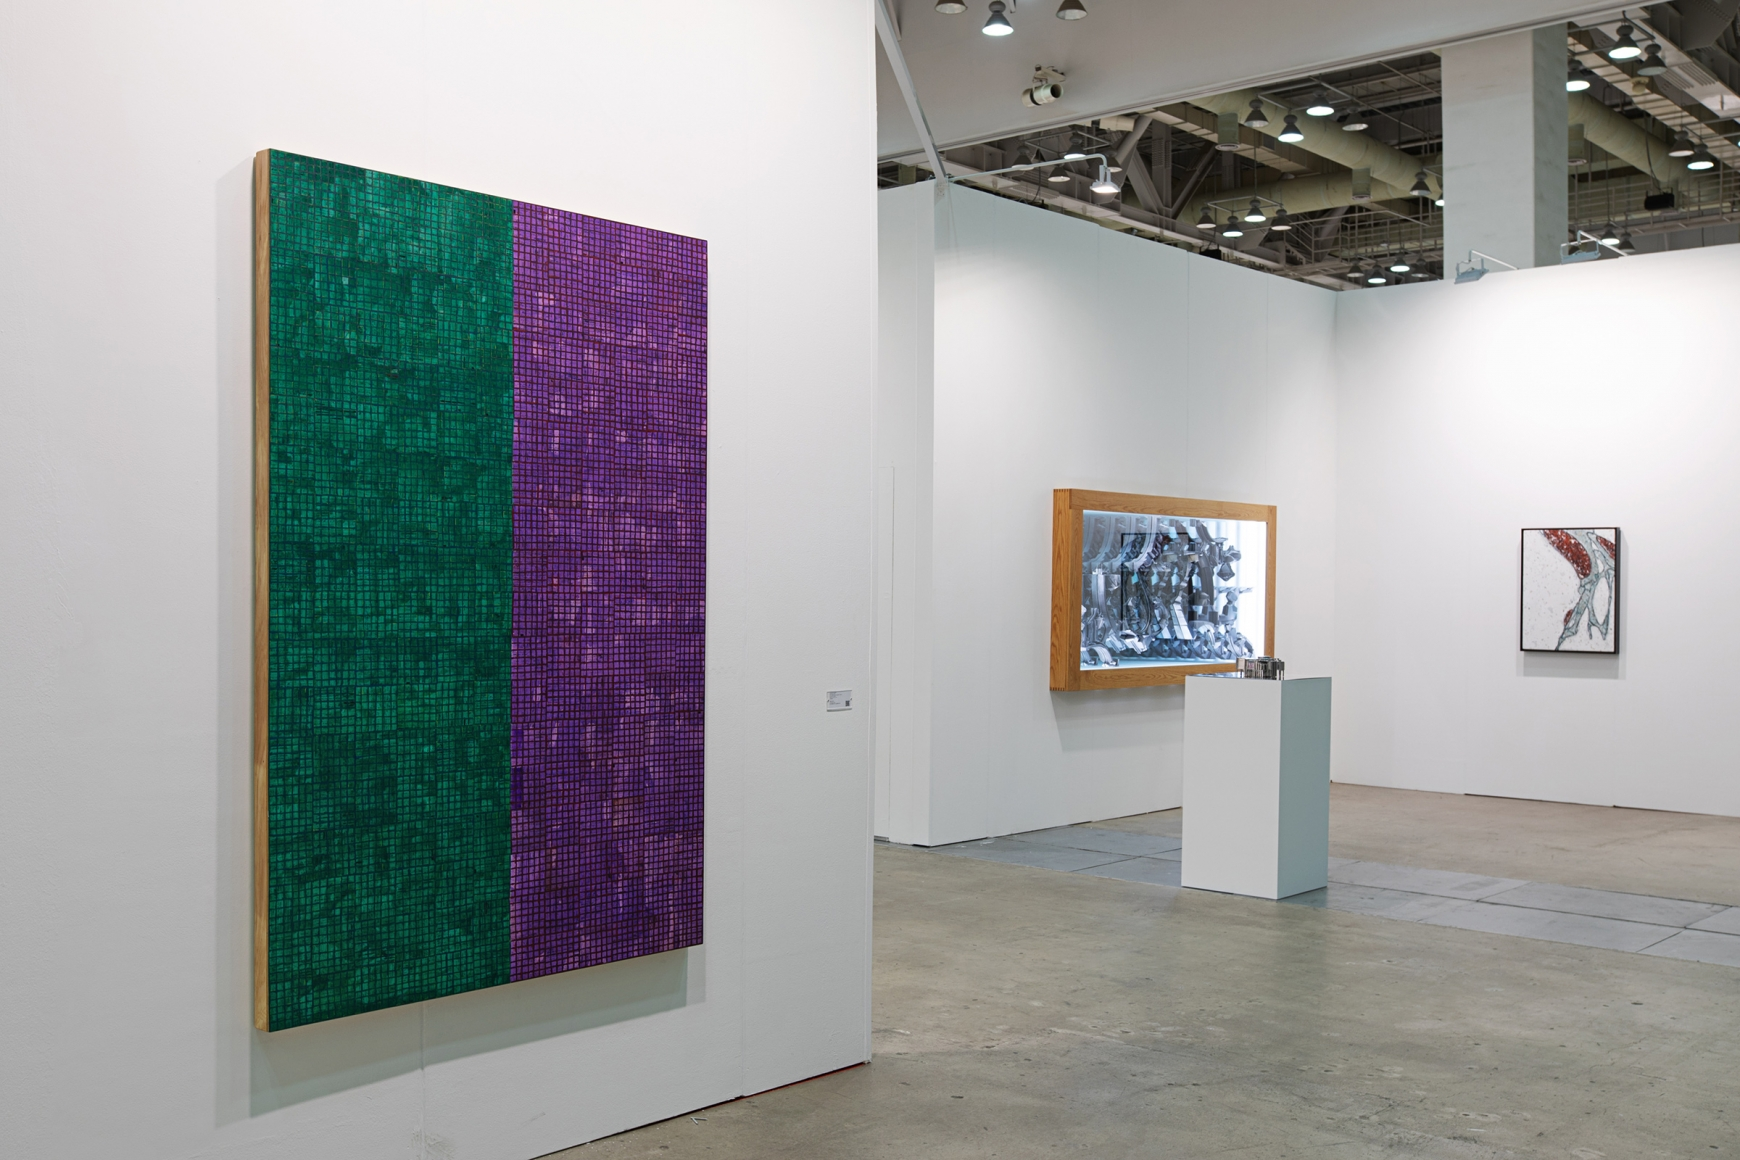 Fifth installation view of Lehmann Maupin's booth at Art Busan & design 2020